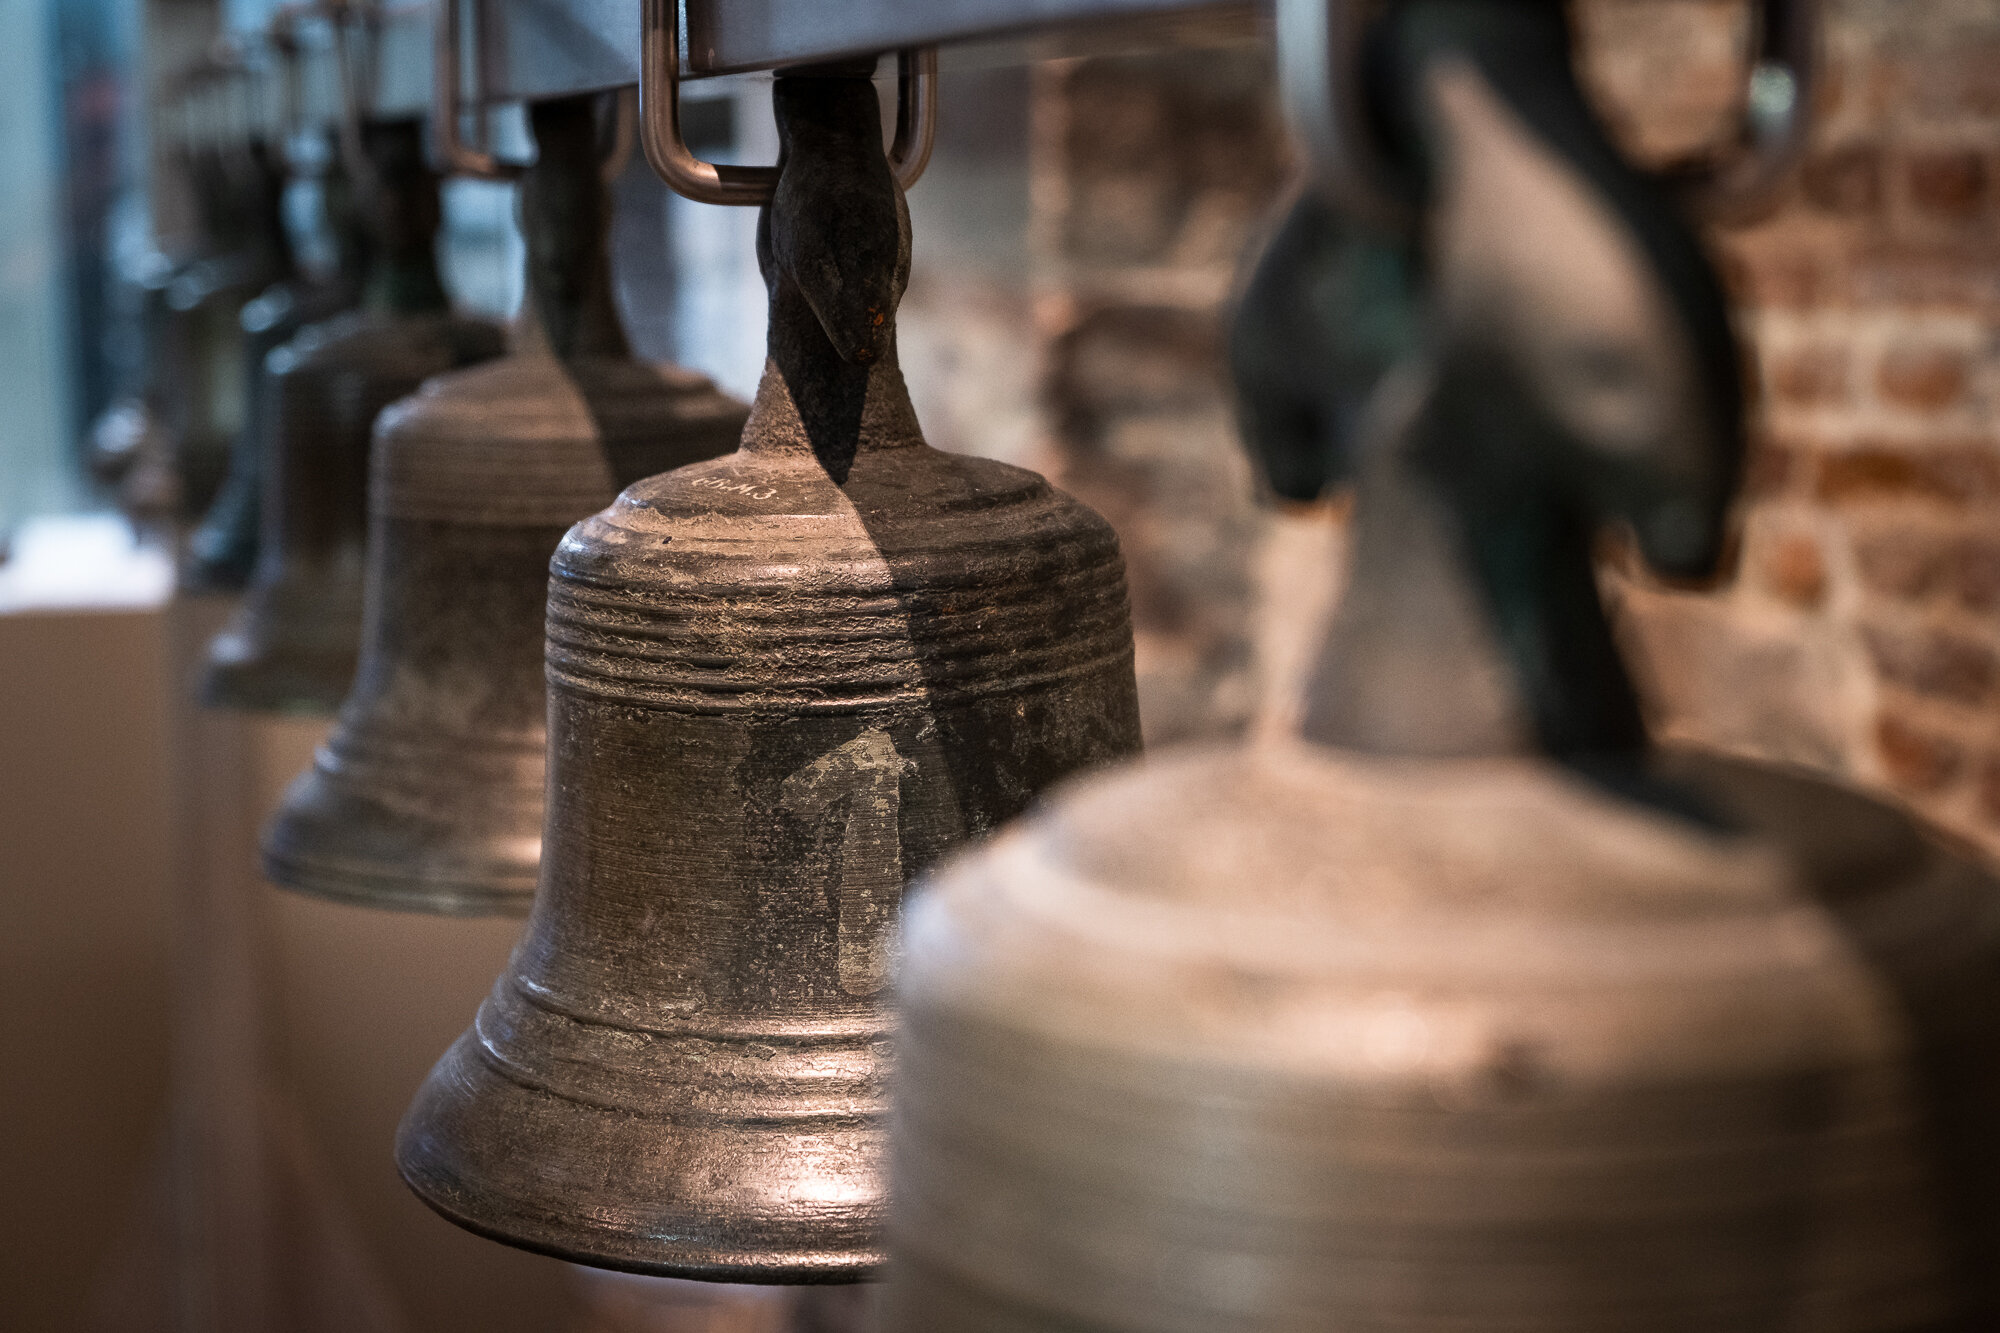 Some bells inside the Belfry of Ghent's tower